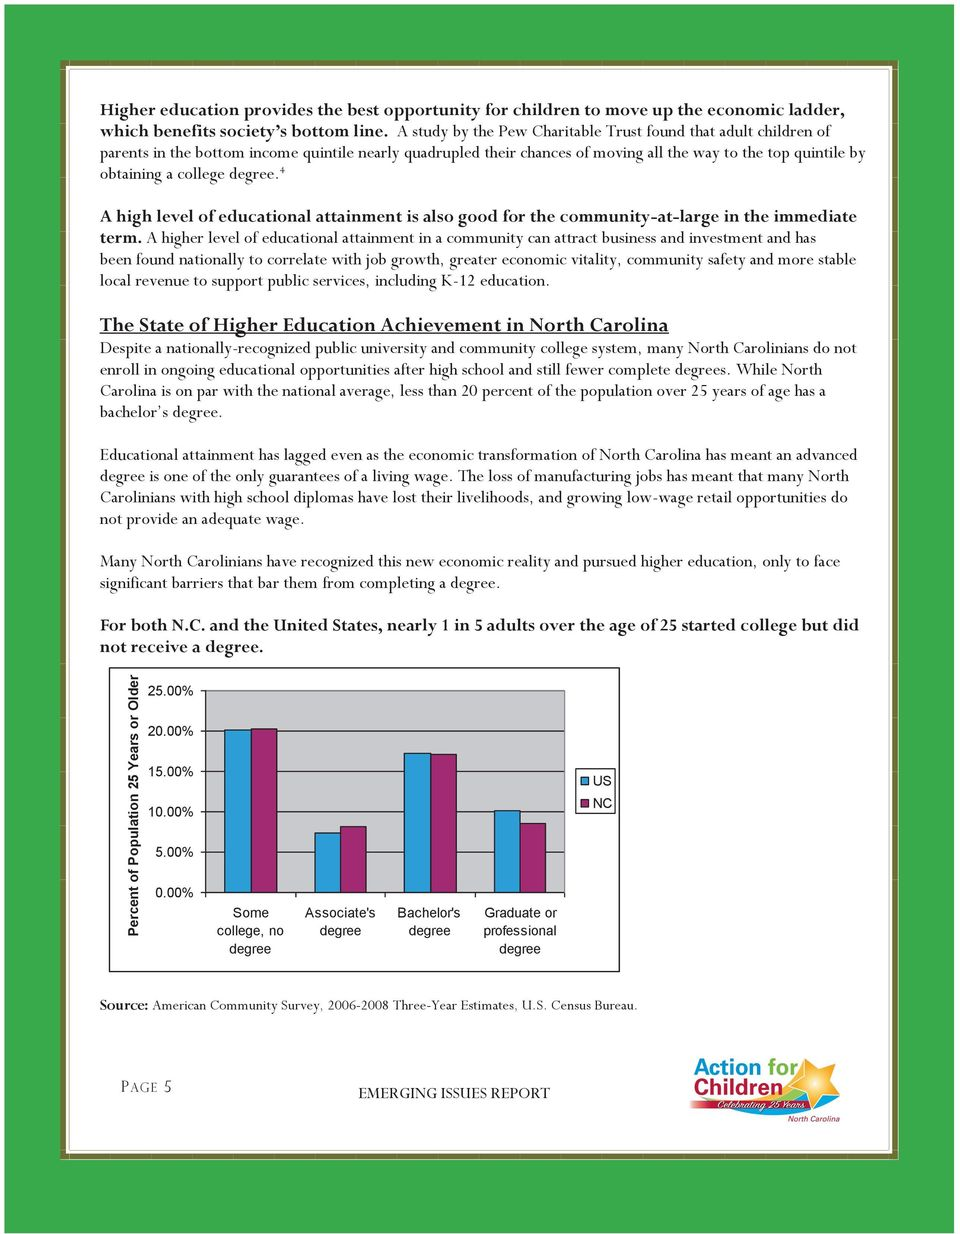 4 A high level of educational attainment is also good for the community-at-large in the immediate term.